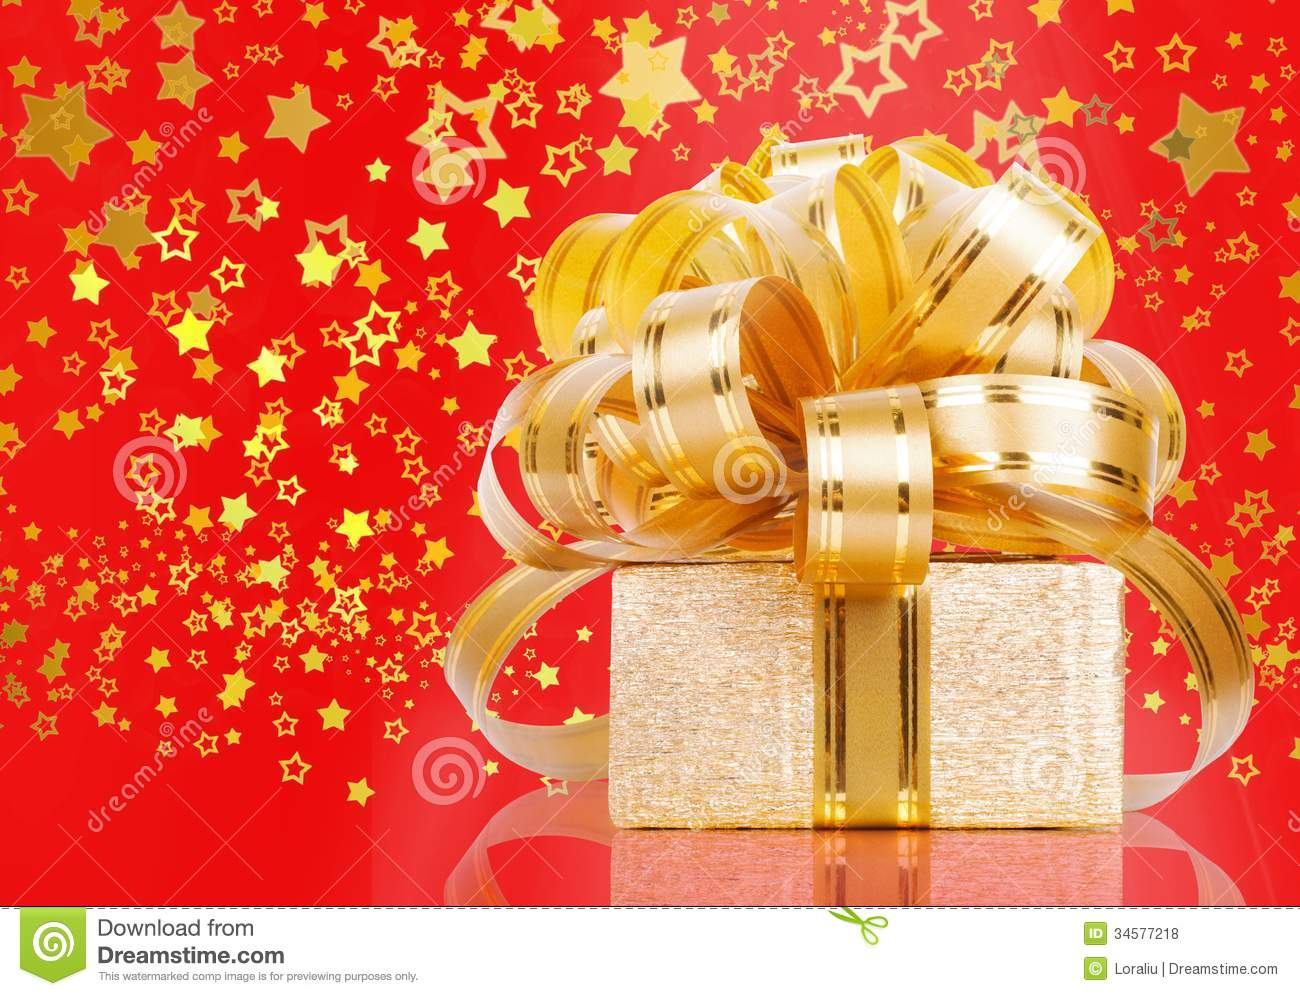 Gift box in gold wrapping paper on a beautiful red abstract background